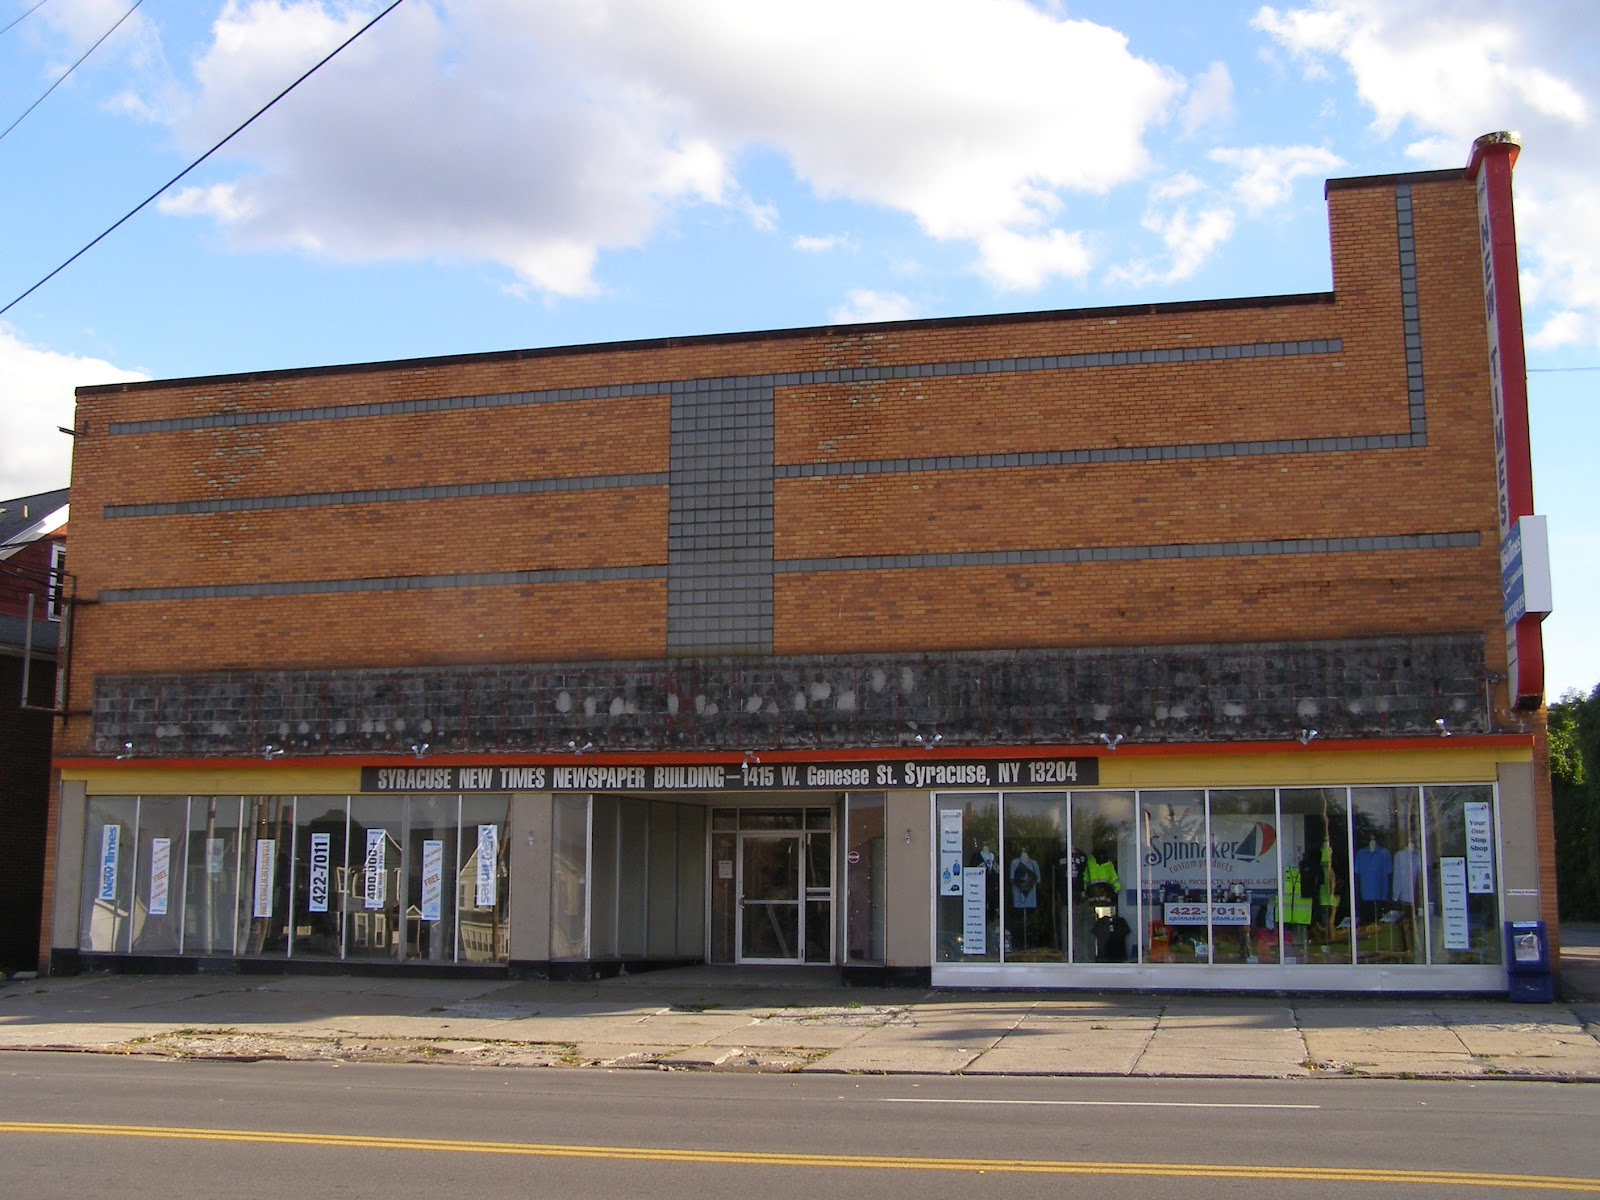 Furniture store building - When Giminski And Yates Built The Store It Must Have Been Striking As It Still Is In Some Ways With Its Flat Geometric Facade Made Of Brick And Glass